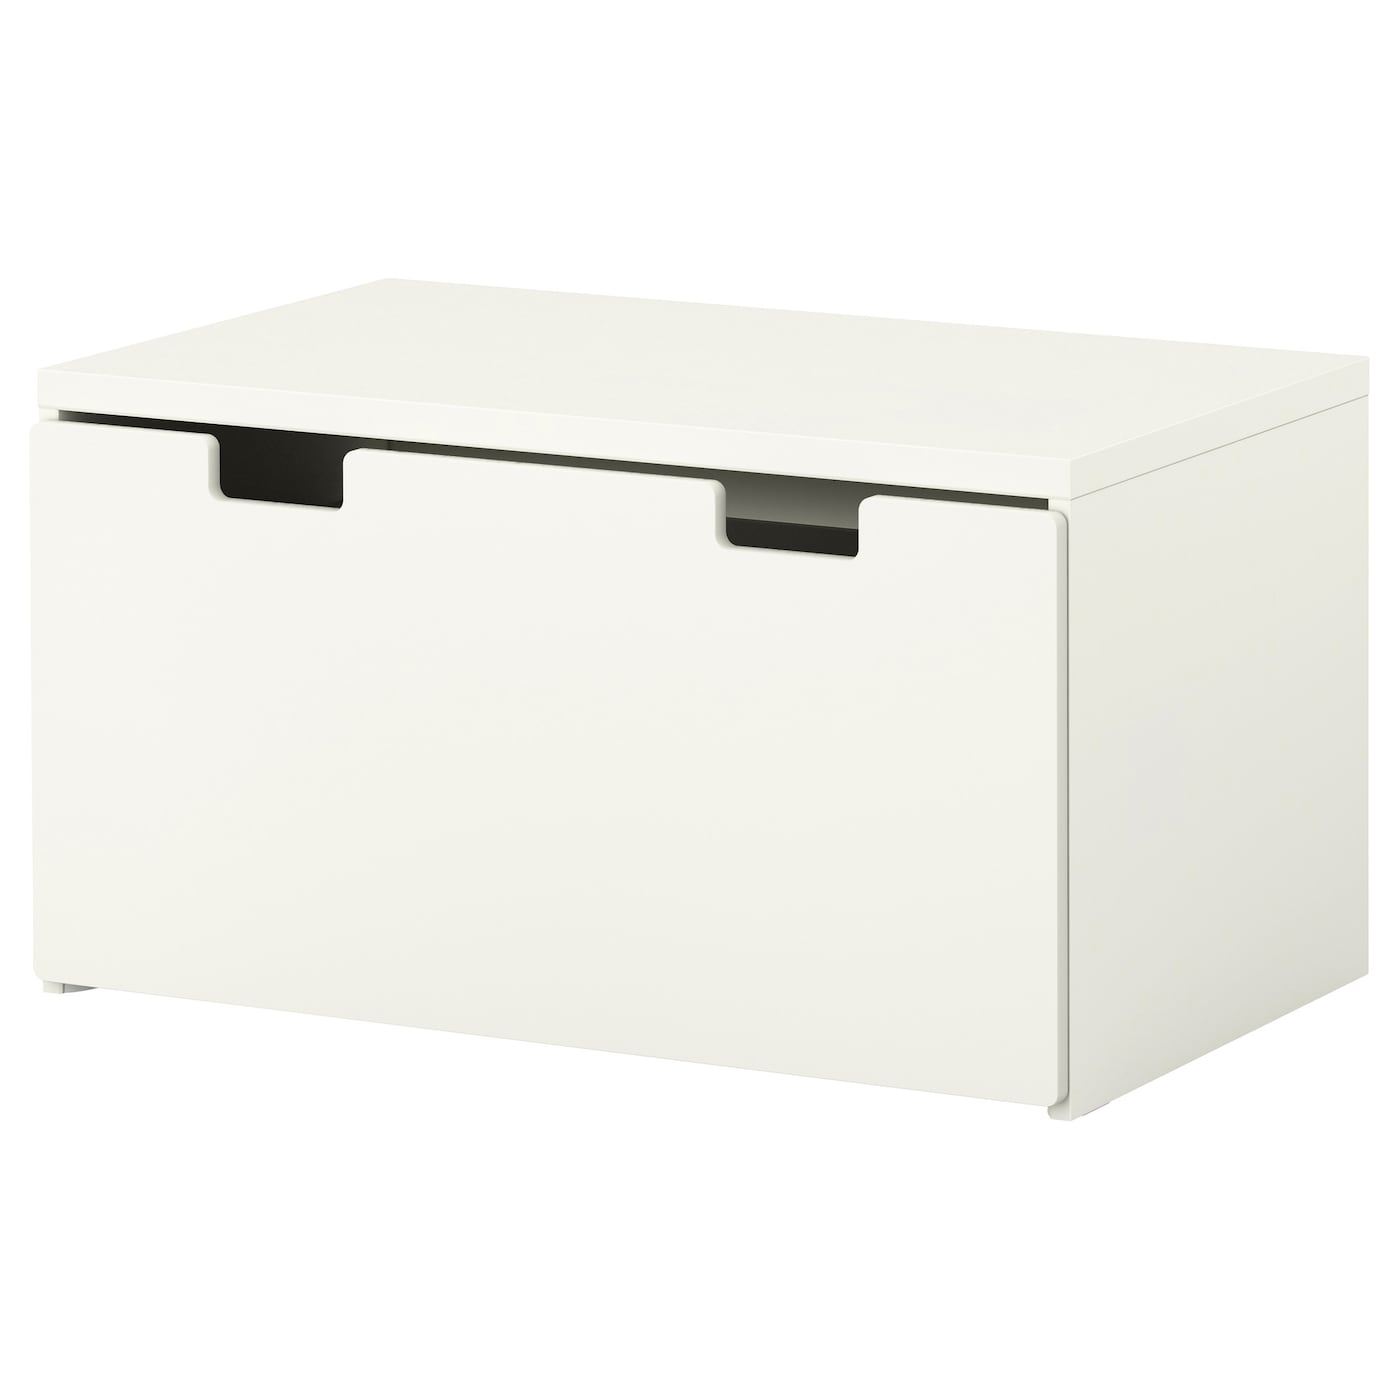 Ikea Stuva Storage Bench Stands Steady Also On Uneven Floors Since Adjule Feet Are Included